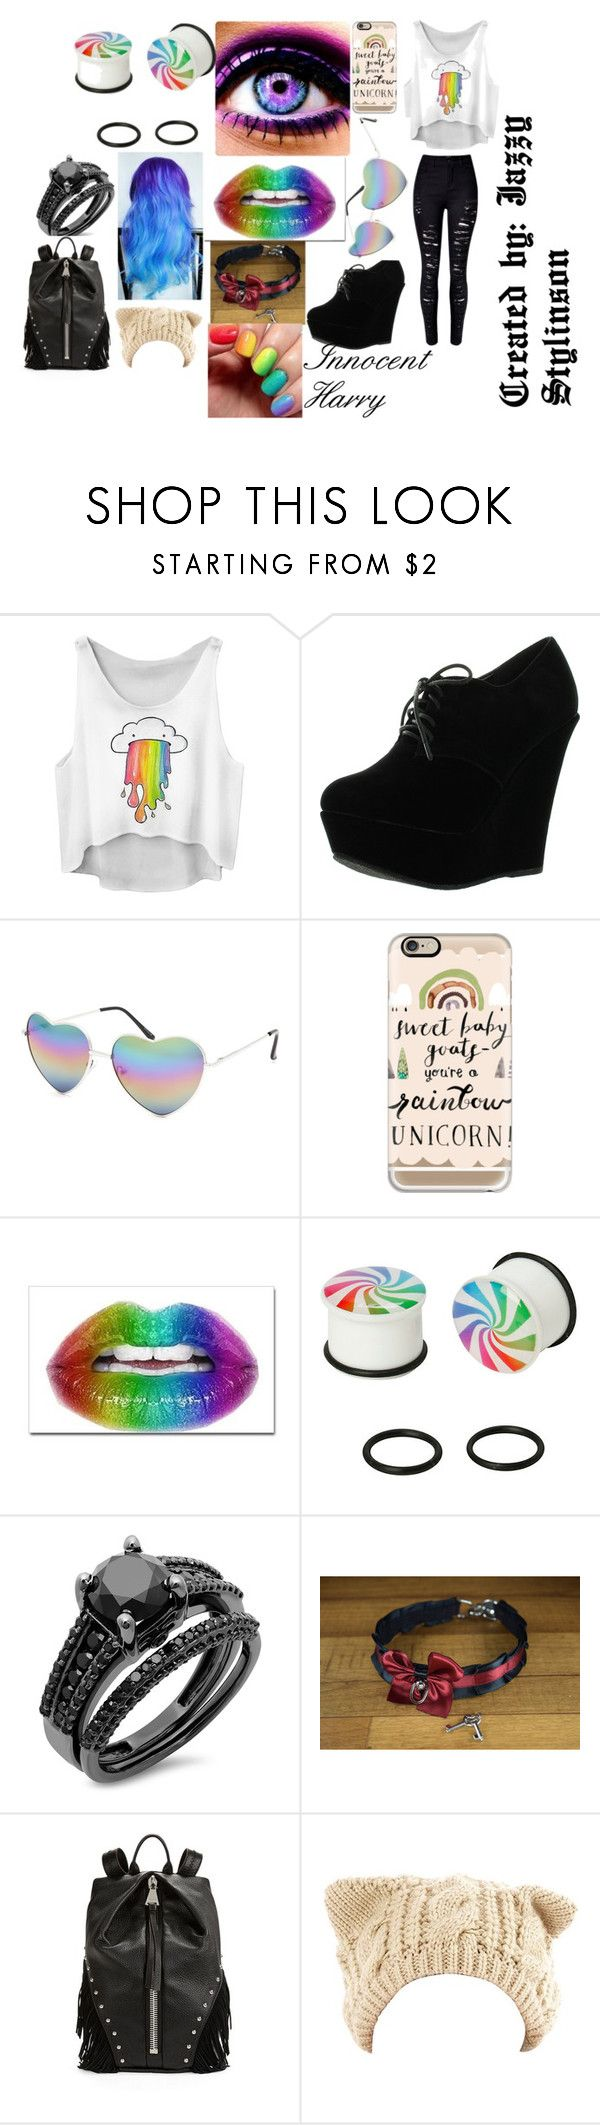 """Innocent Fem! Harry"" by melody-cullen ❤ liked on Polyvore featuring Forever Link, Full Tilt, Casetify, Aimee Kestenberg, women's clothing, women, female, woman, misses and juniors"